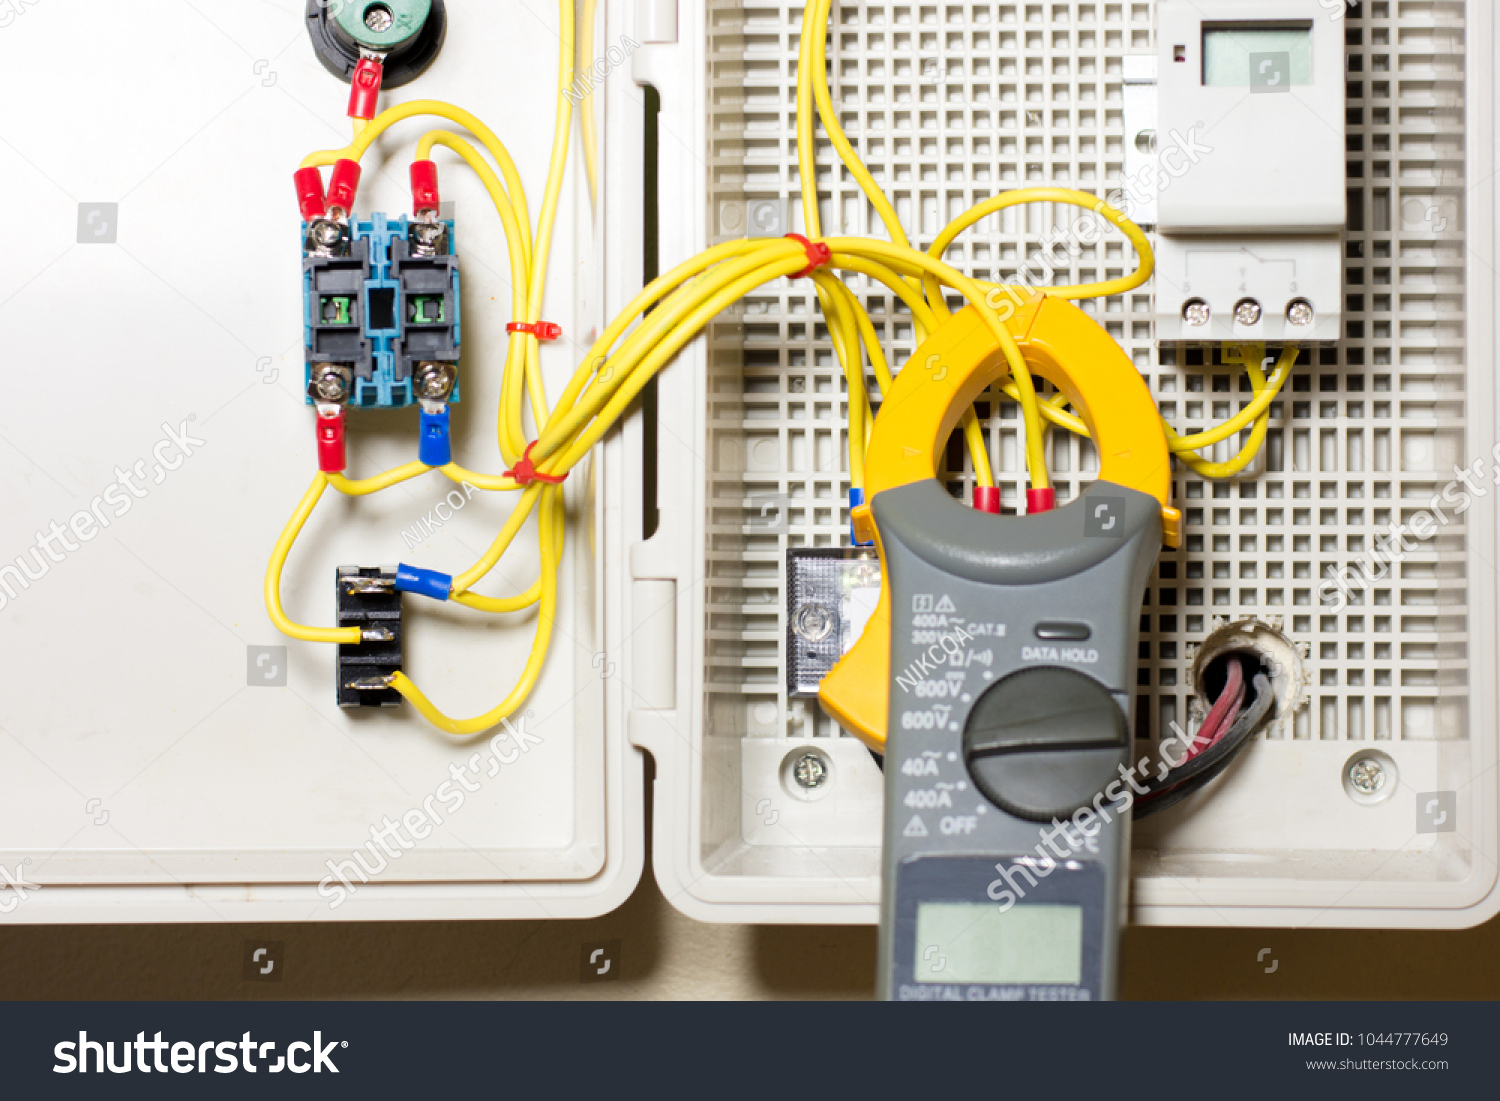 Electrical Terminal Junction Box Control Panel Stock Photo Edit Now Home Wiring Distribution With Digital Clamp Multimeter And Timer Switch